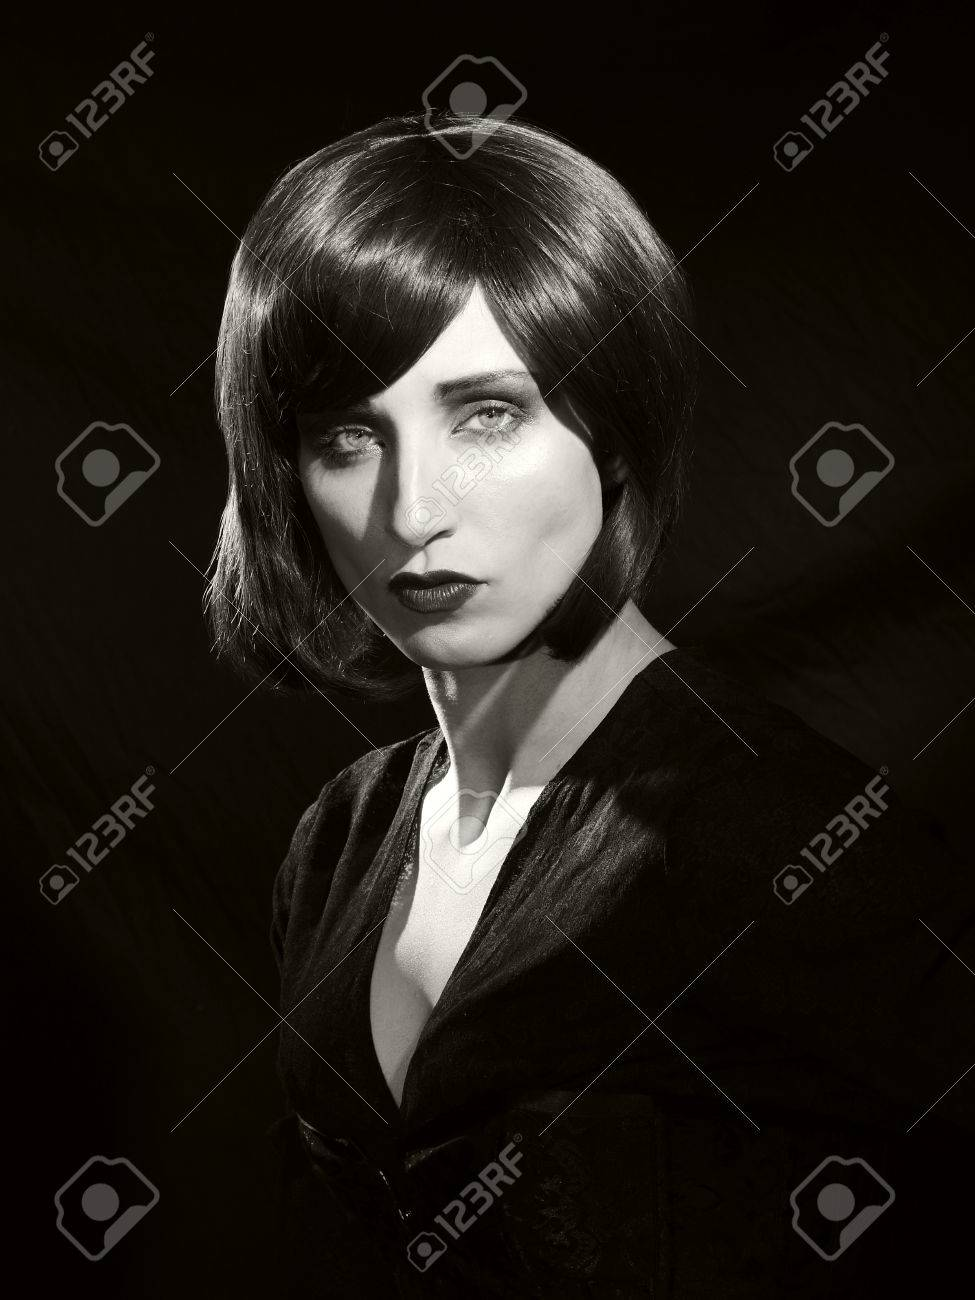 A black and white classic hollywood style glamour portrait from